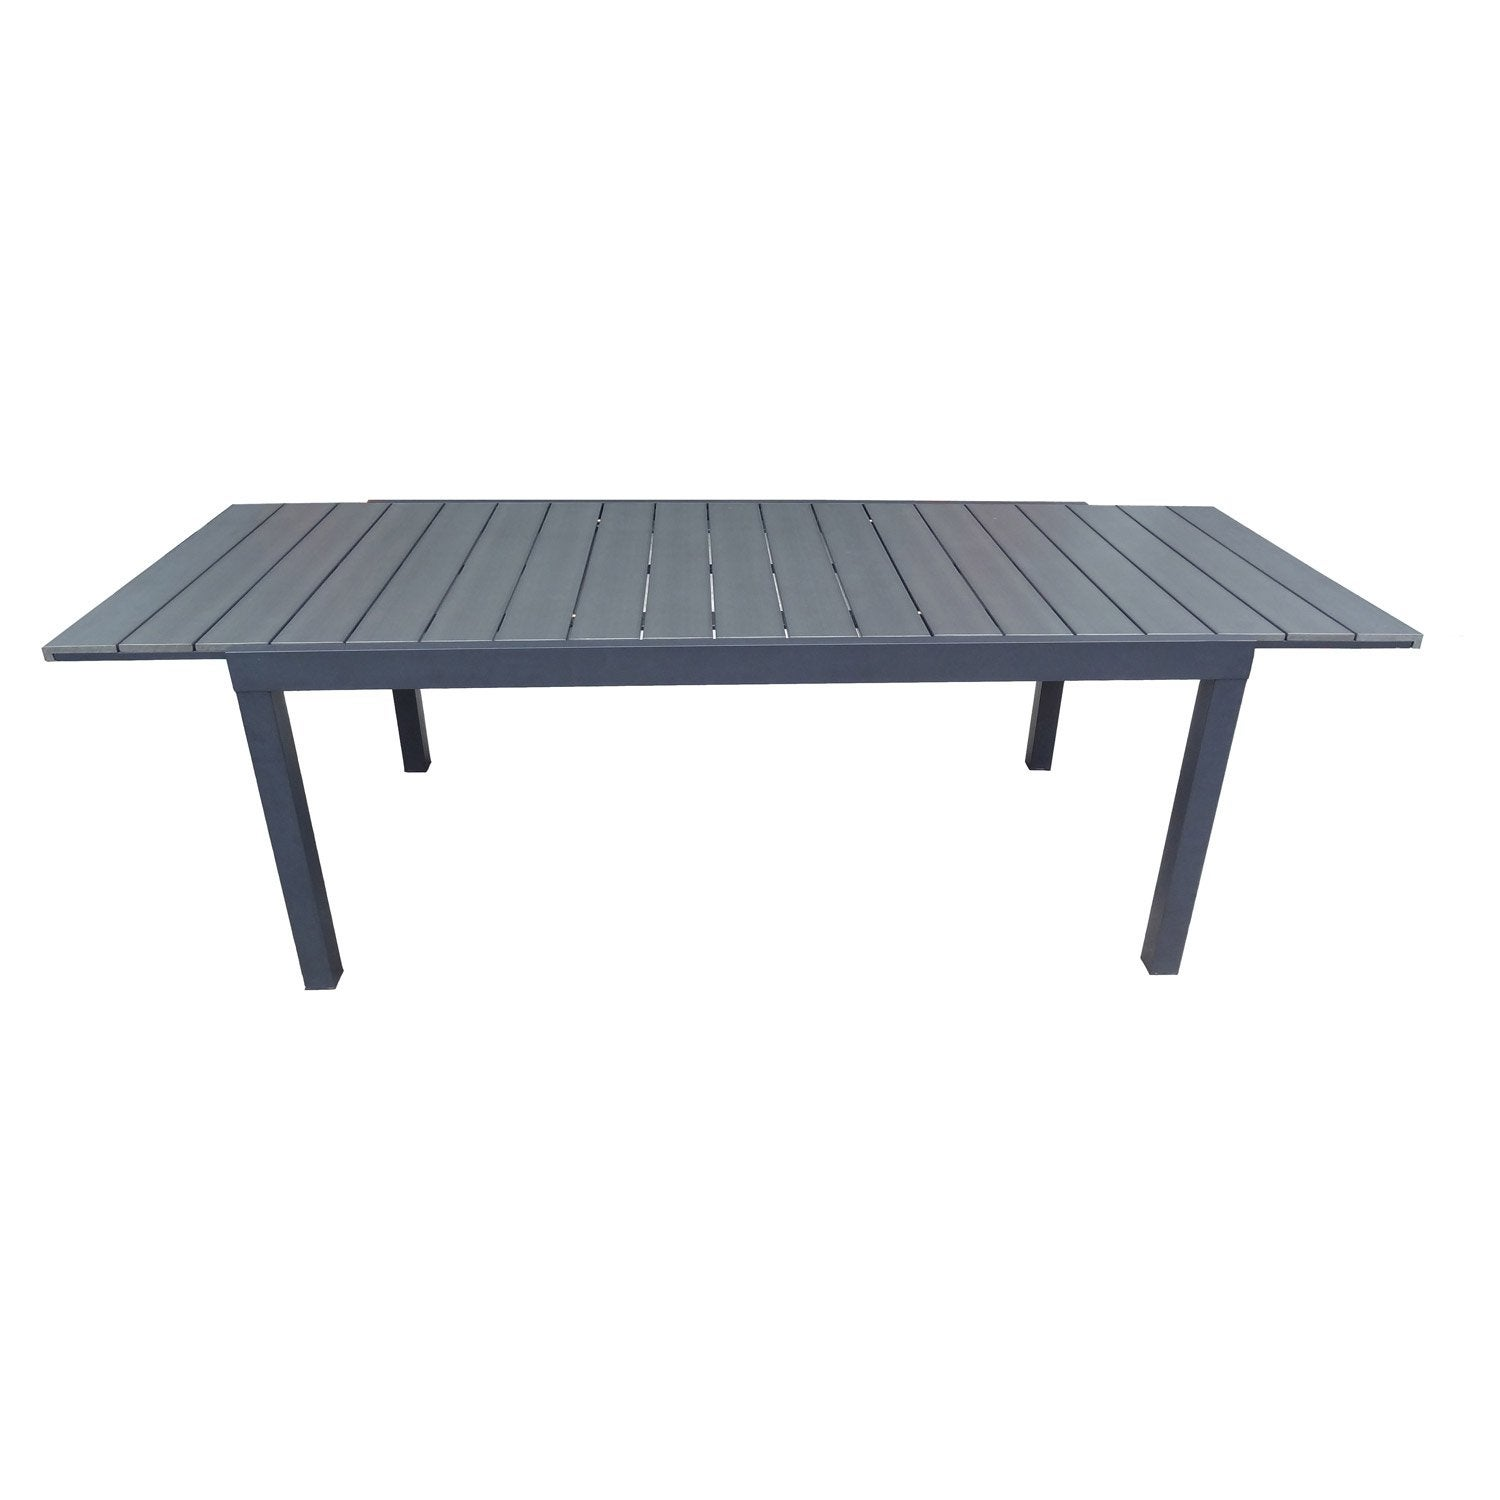 Table de jardin naterial pratt rectangulaire gris leroy for Table basse en aluminium